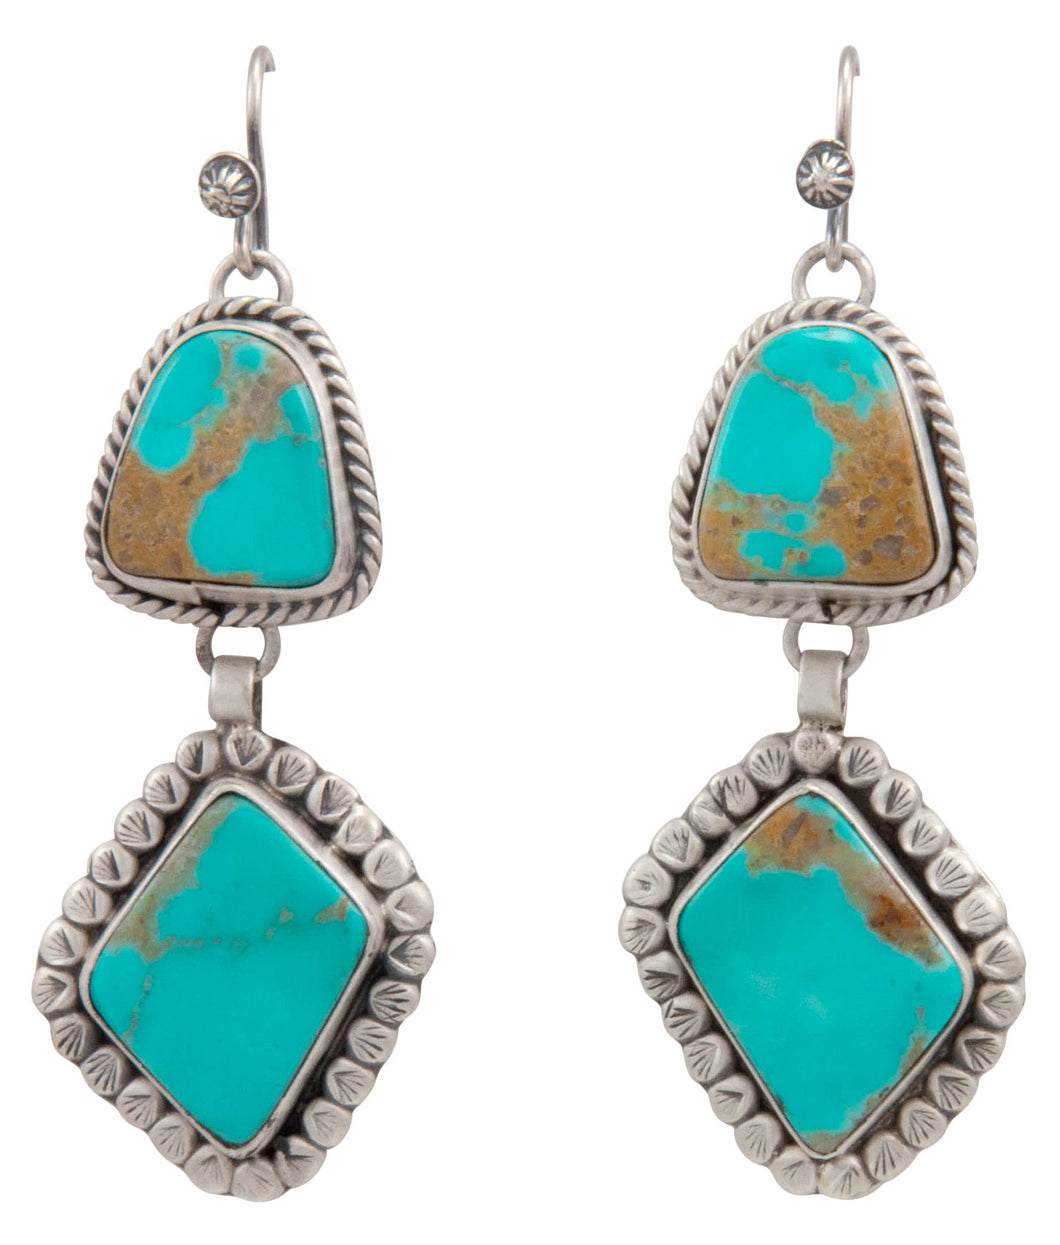 Navajo Native American Royston Turquoise Earrings by Martha Willeto SKU231517